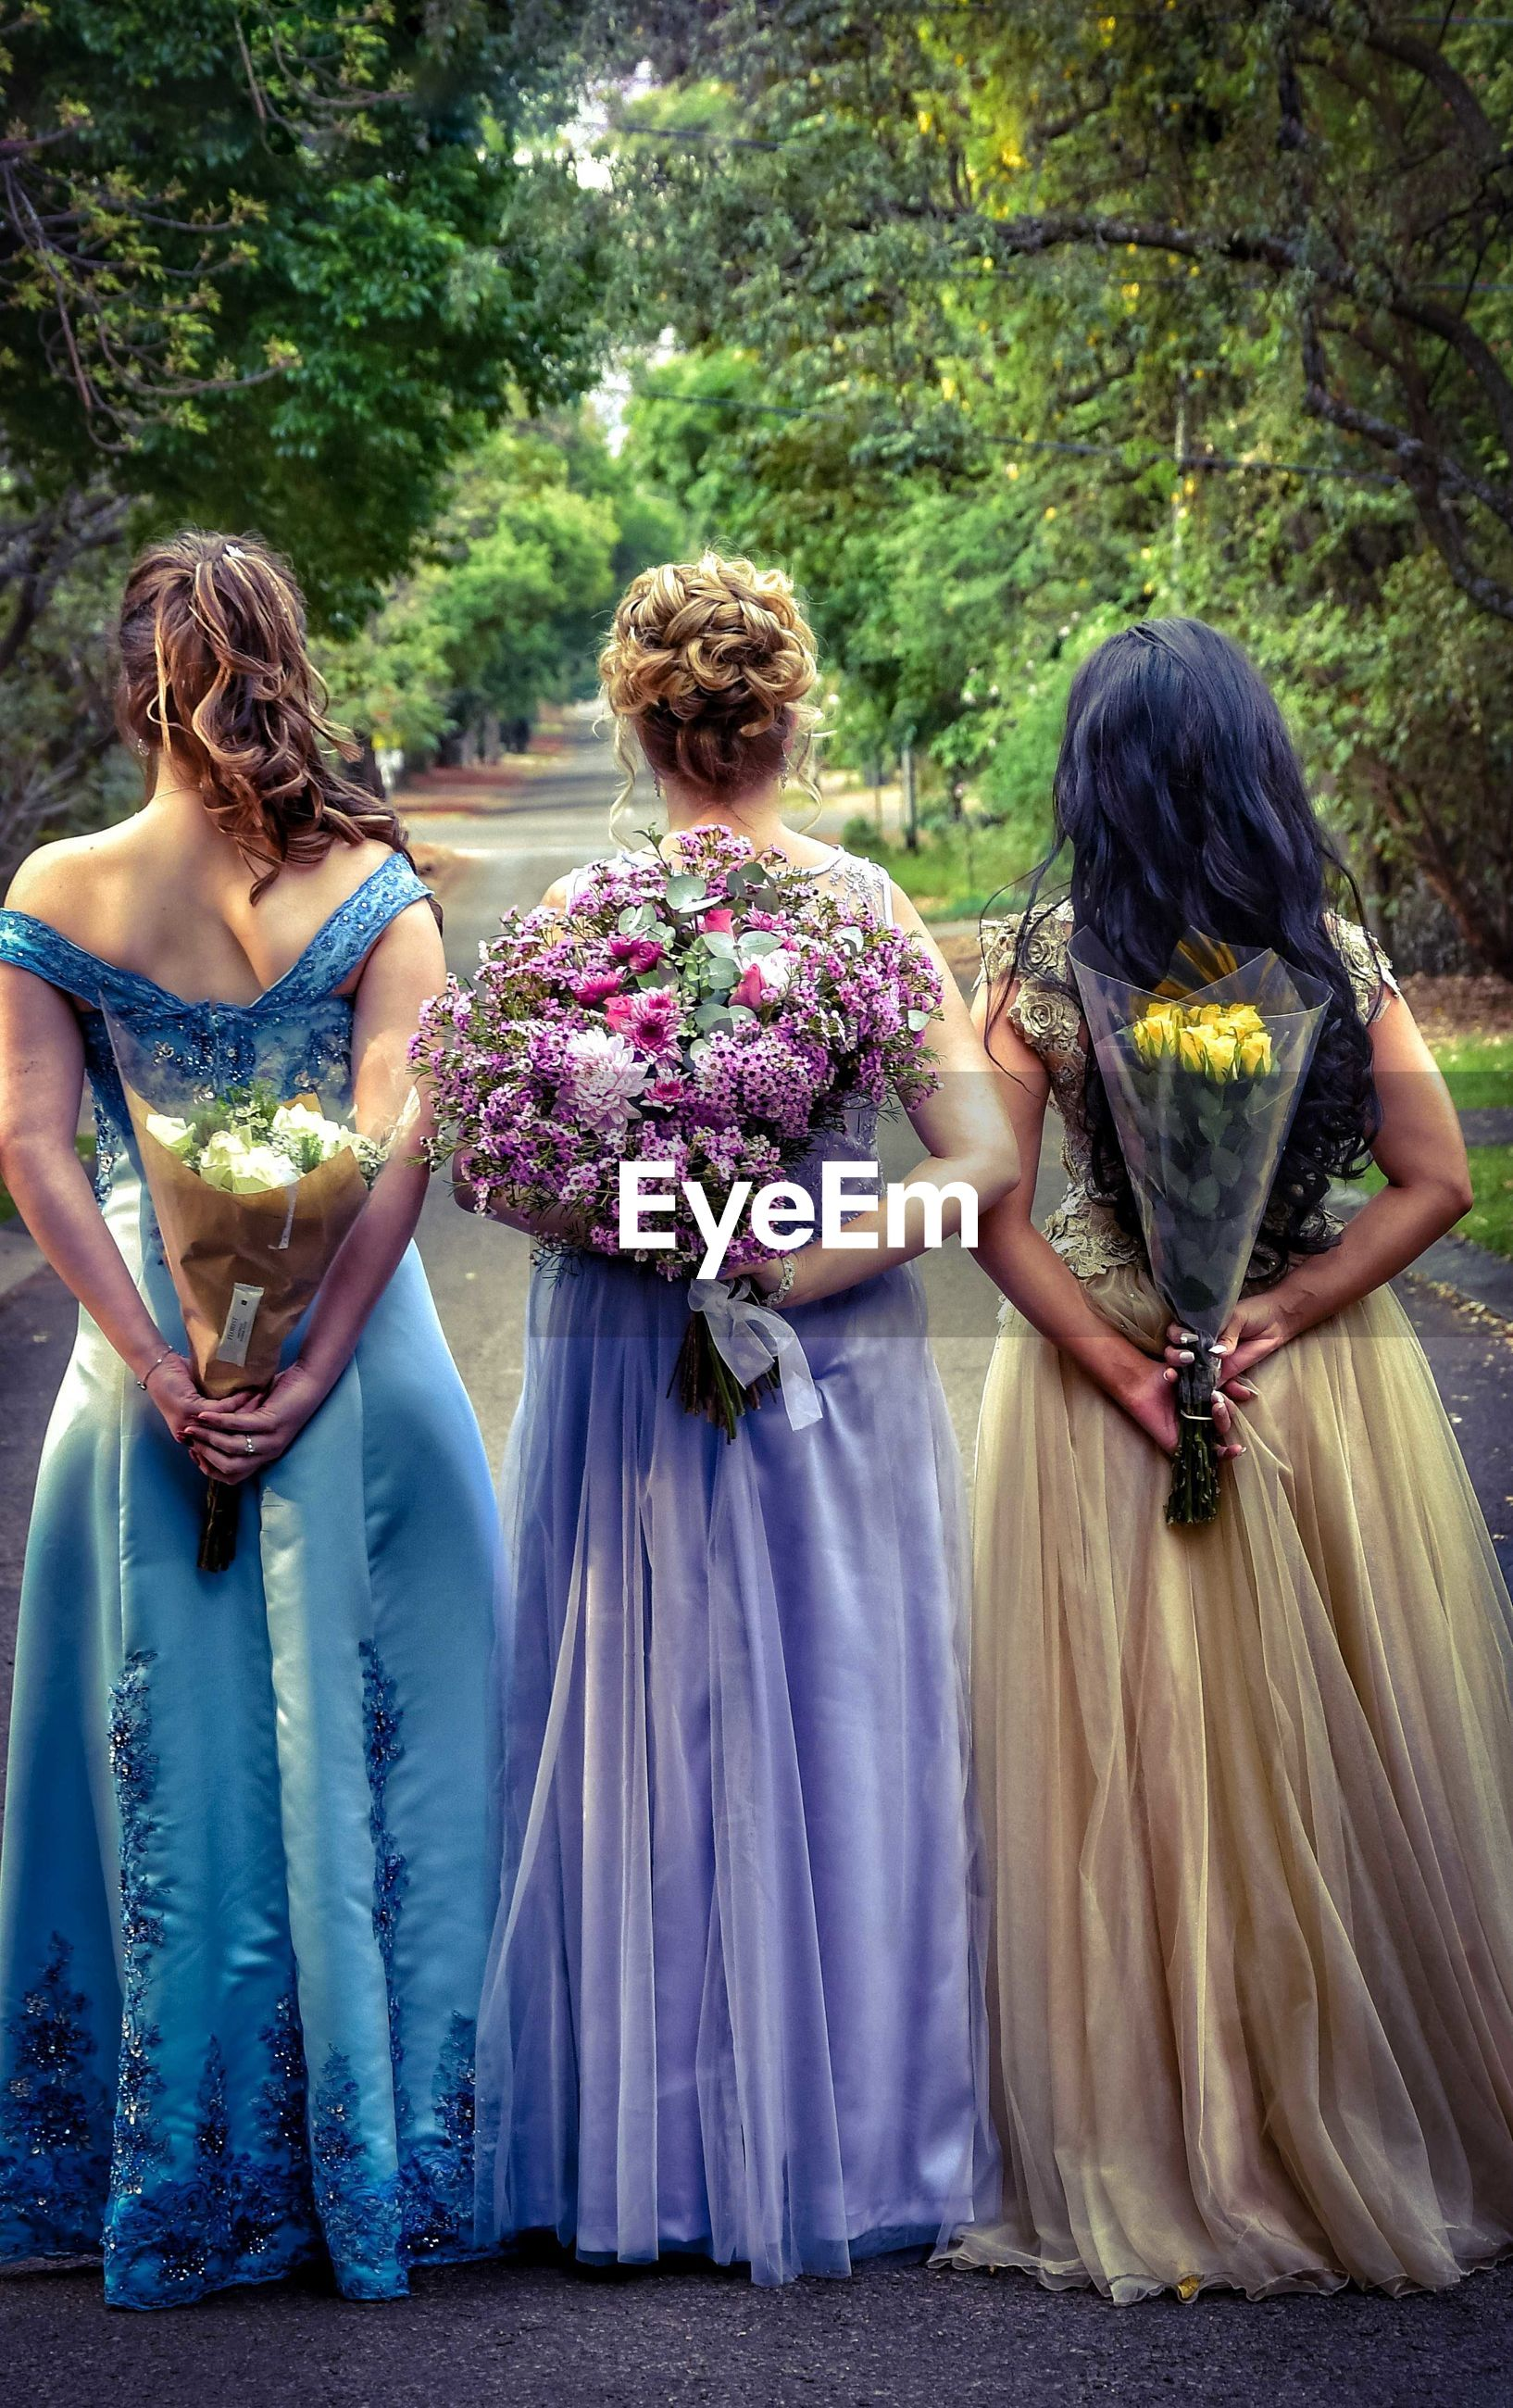 REAR VIEW OF WOMEN STANDING WITH FLOWERS IN FOREGROUND